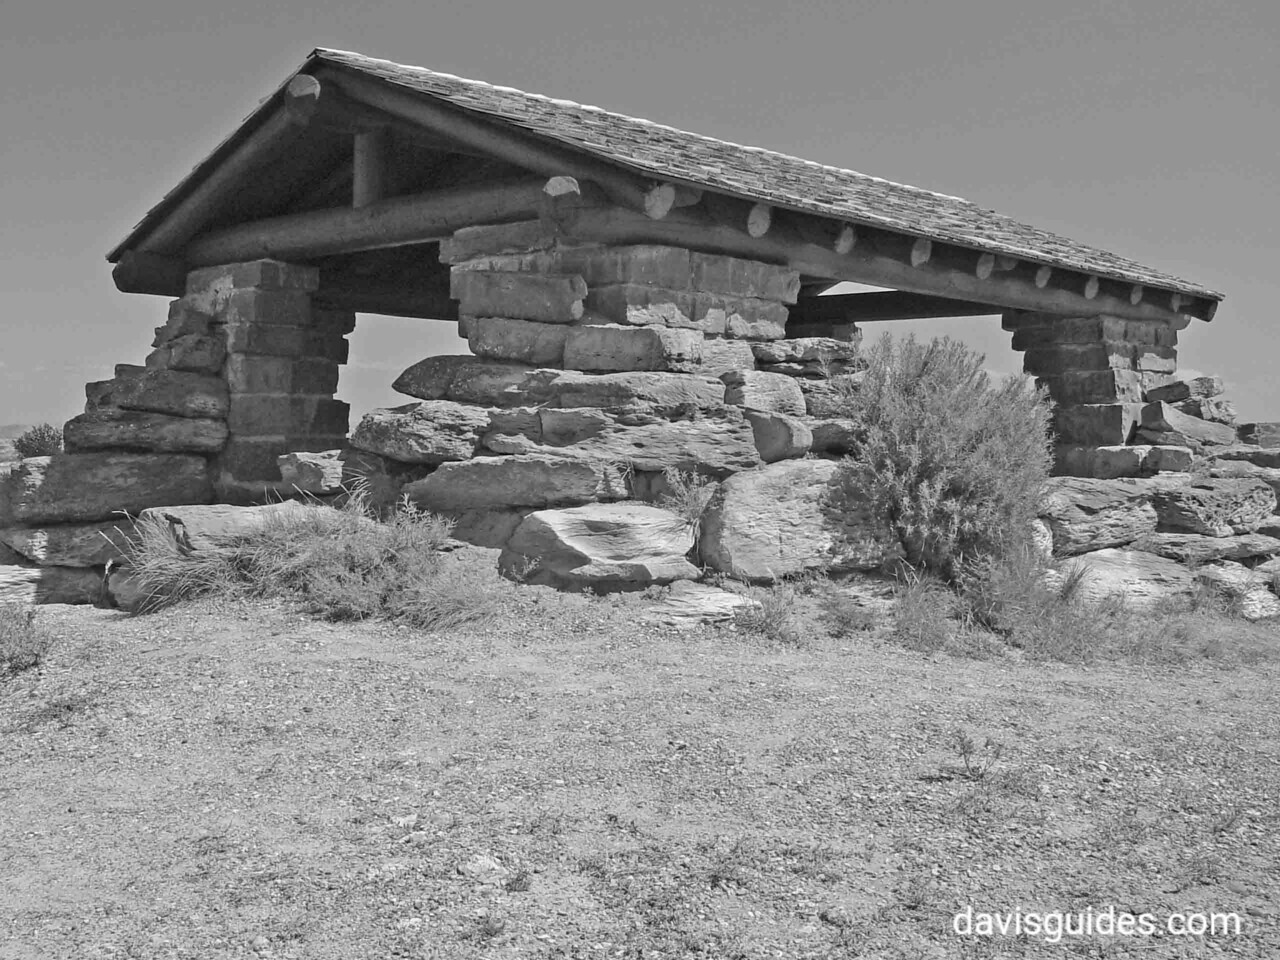 Rough hewn stone shelter above the Little Missouri River, Theodore Roosevelt National Park, North Dakota